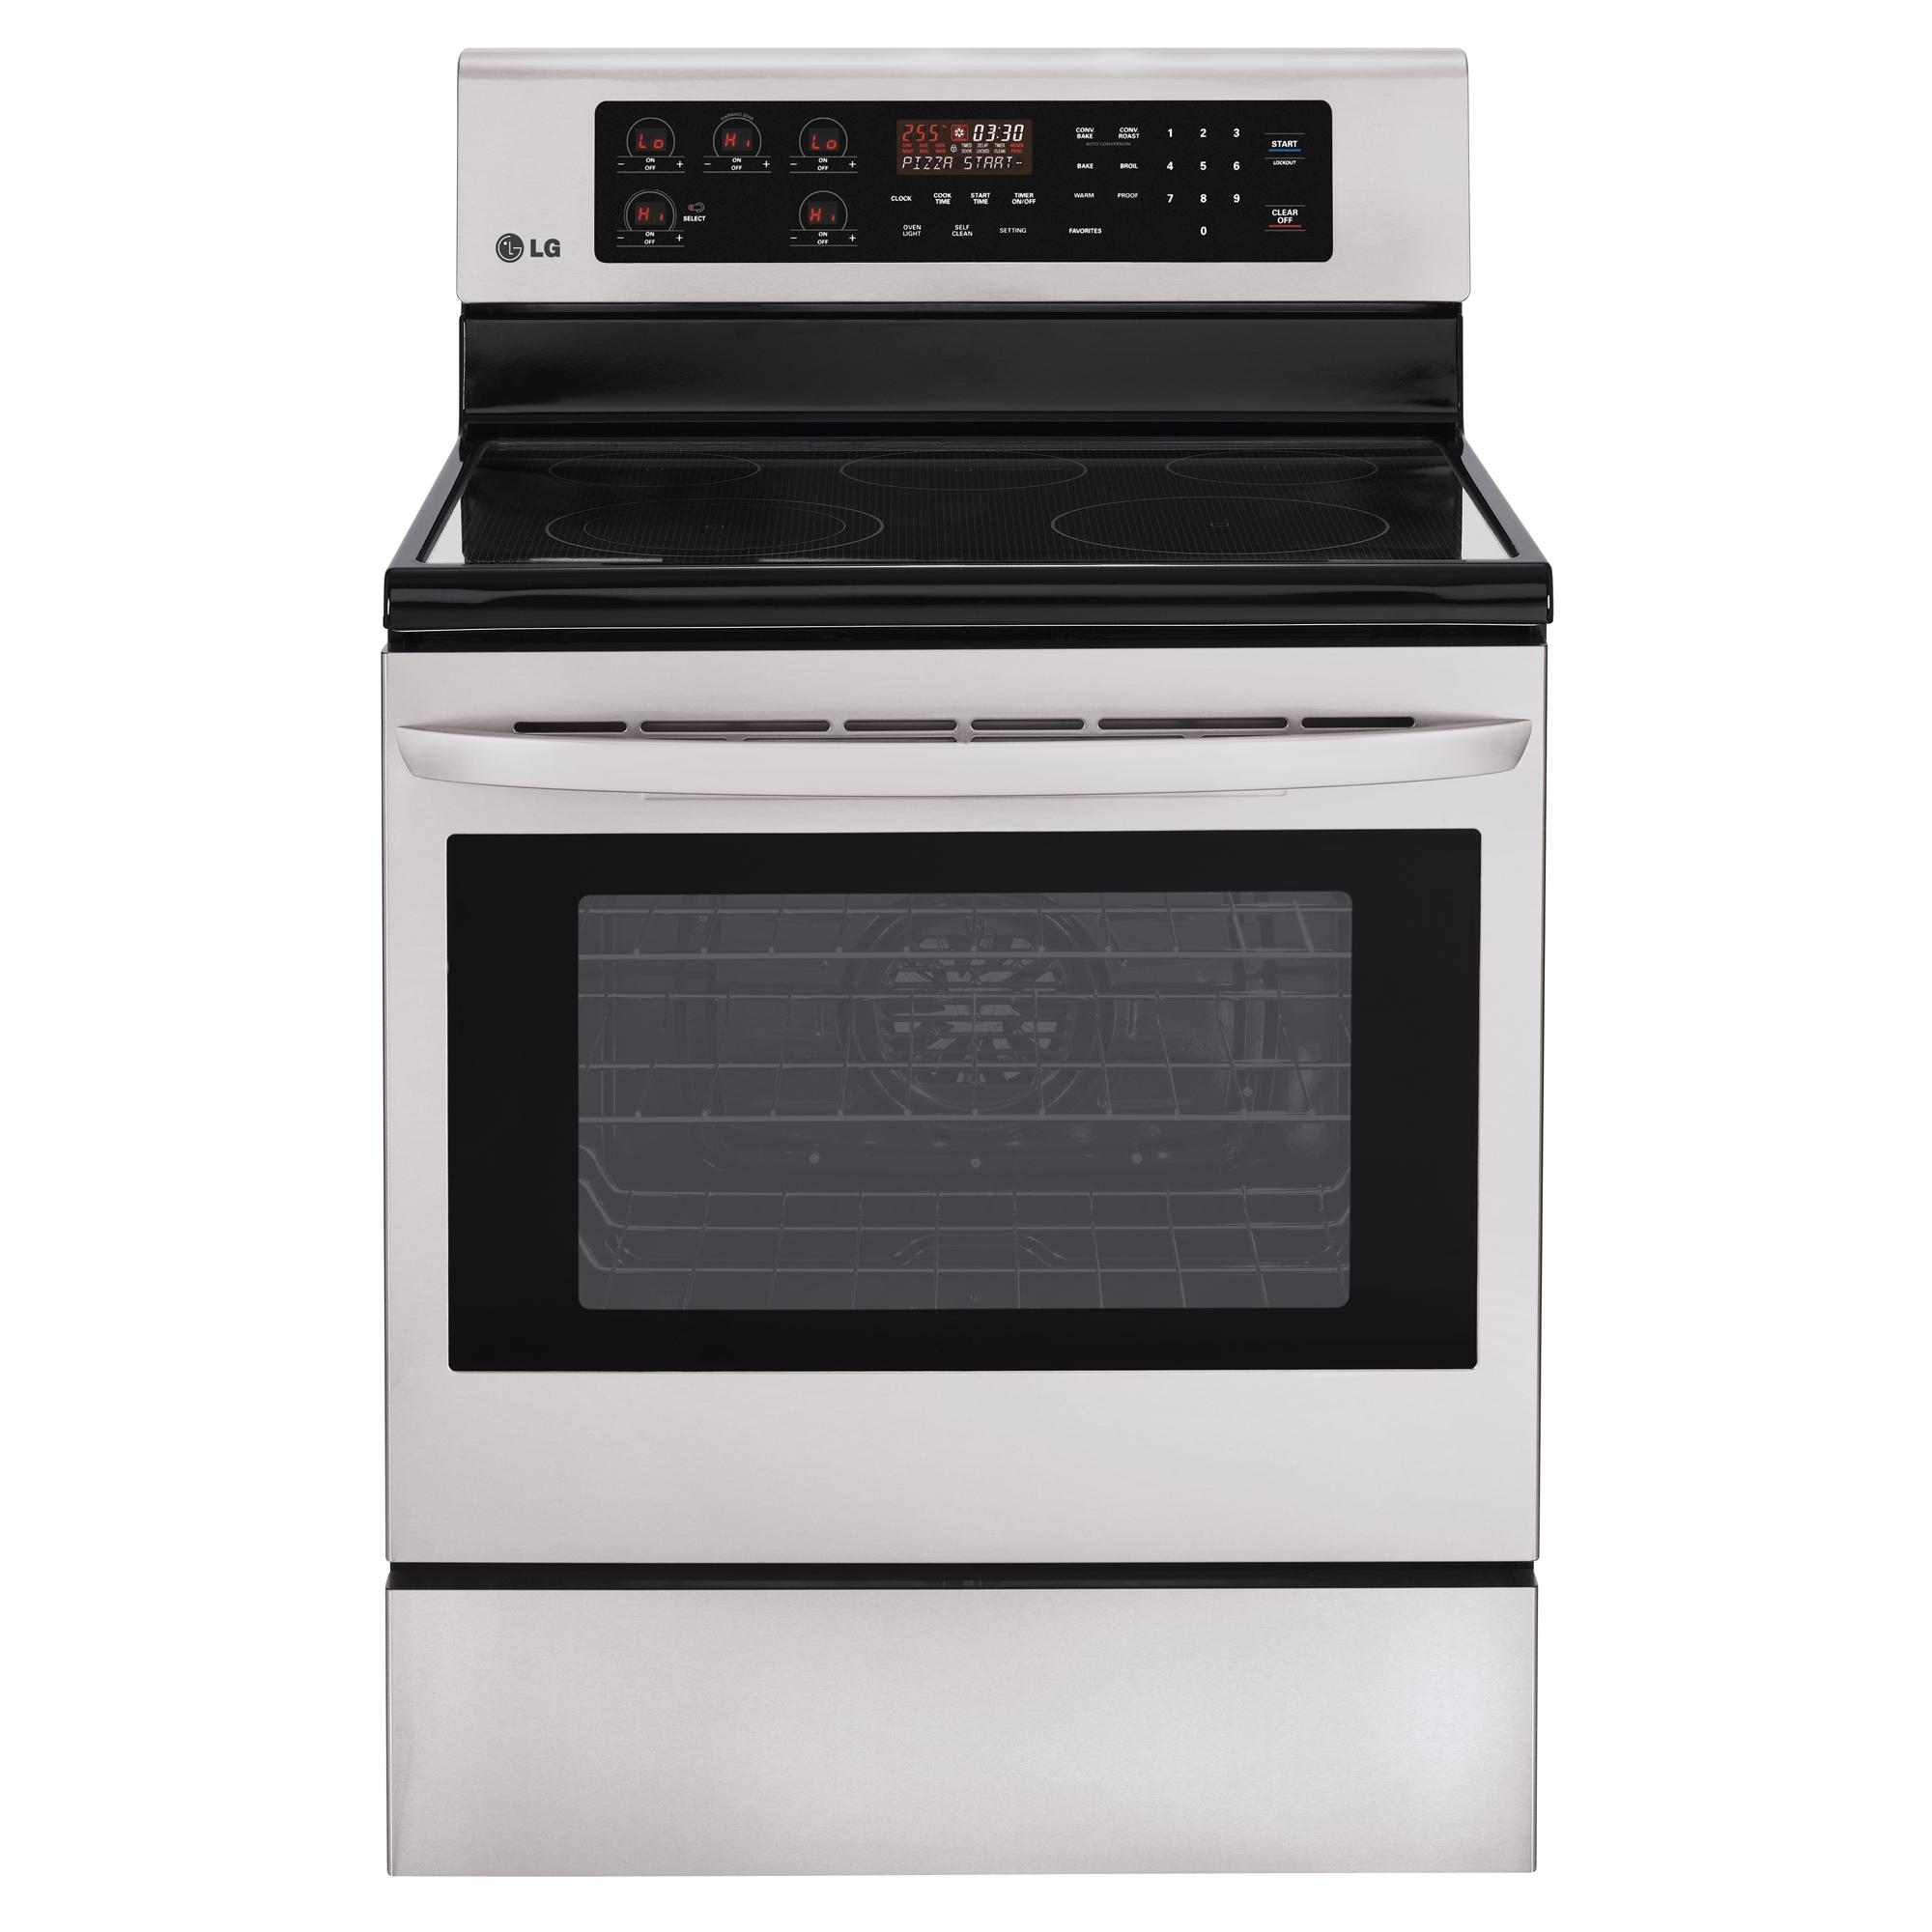 "LG Appliances Electric Ranges 30"" Freestanding Electric Range - Item Number: LRE3083ST"